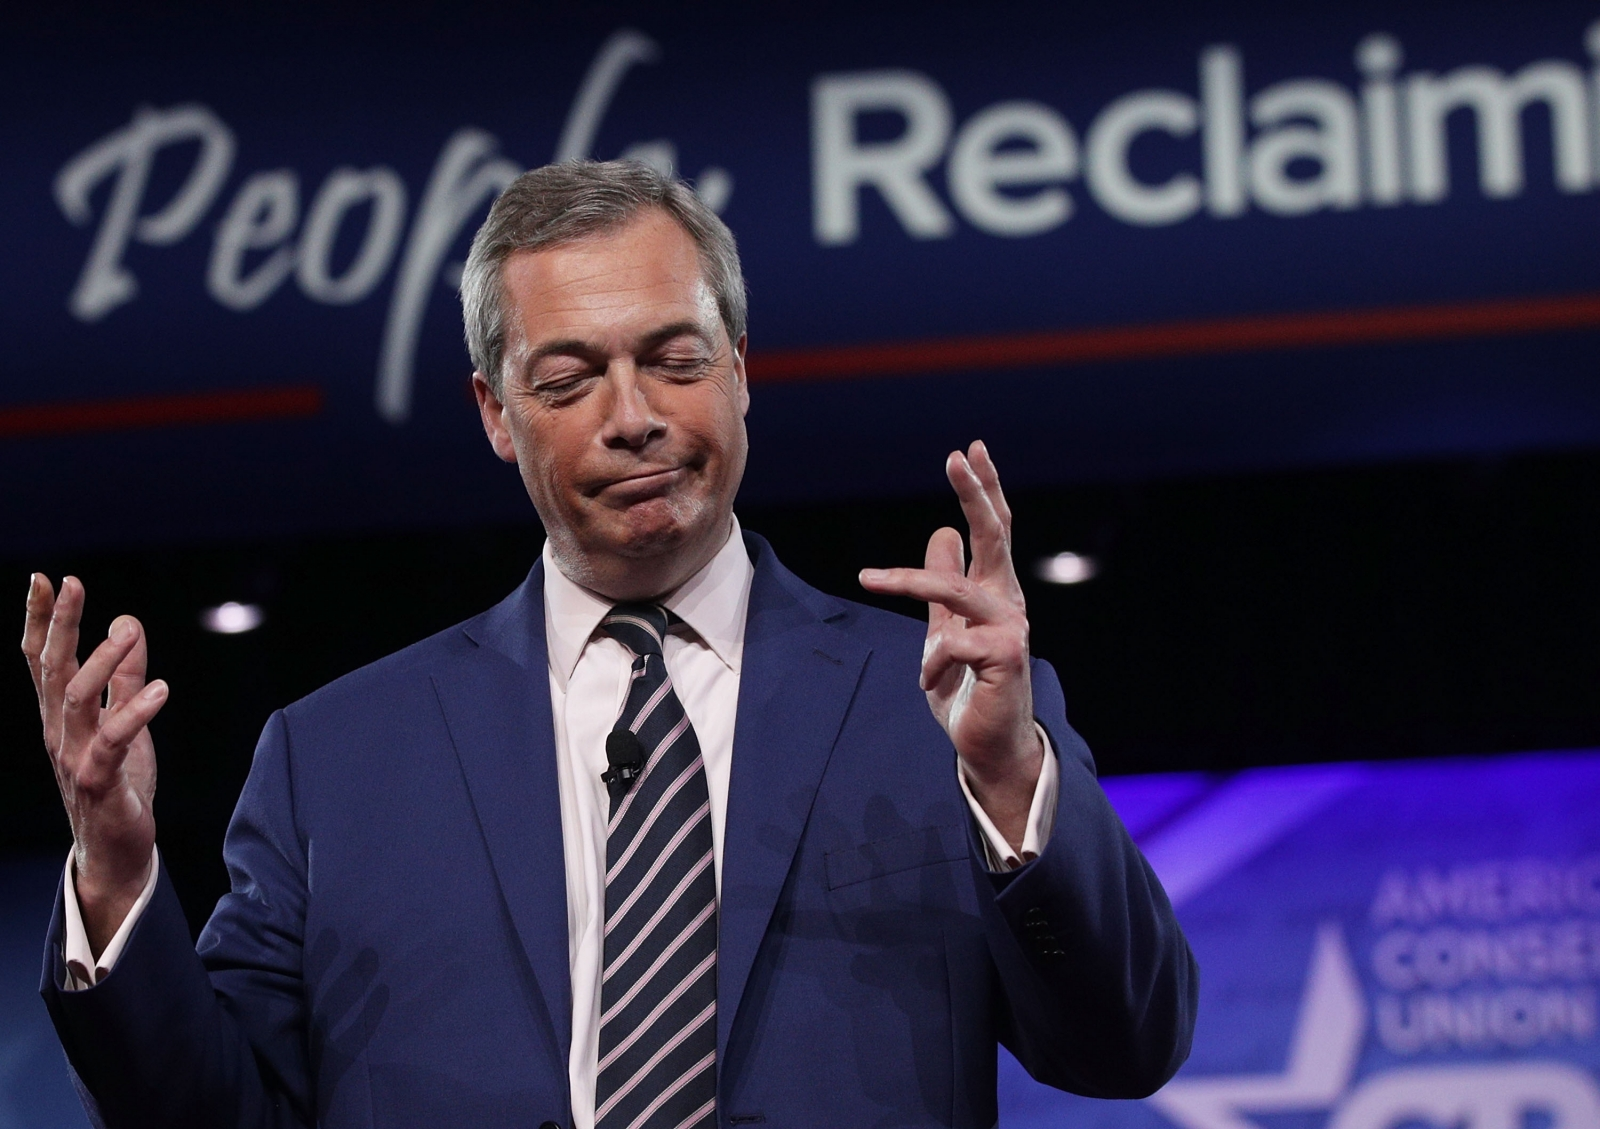 Nigel Farage speaks at CPAC